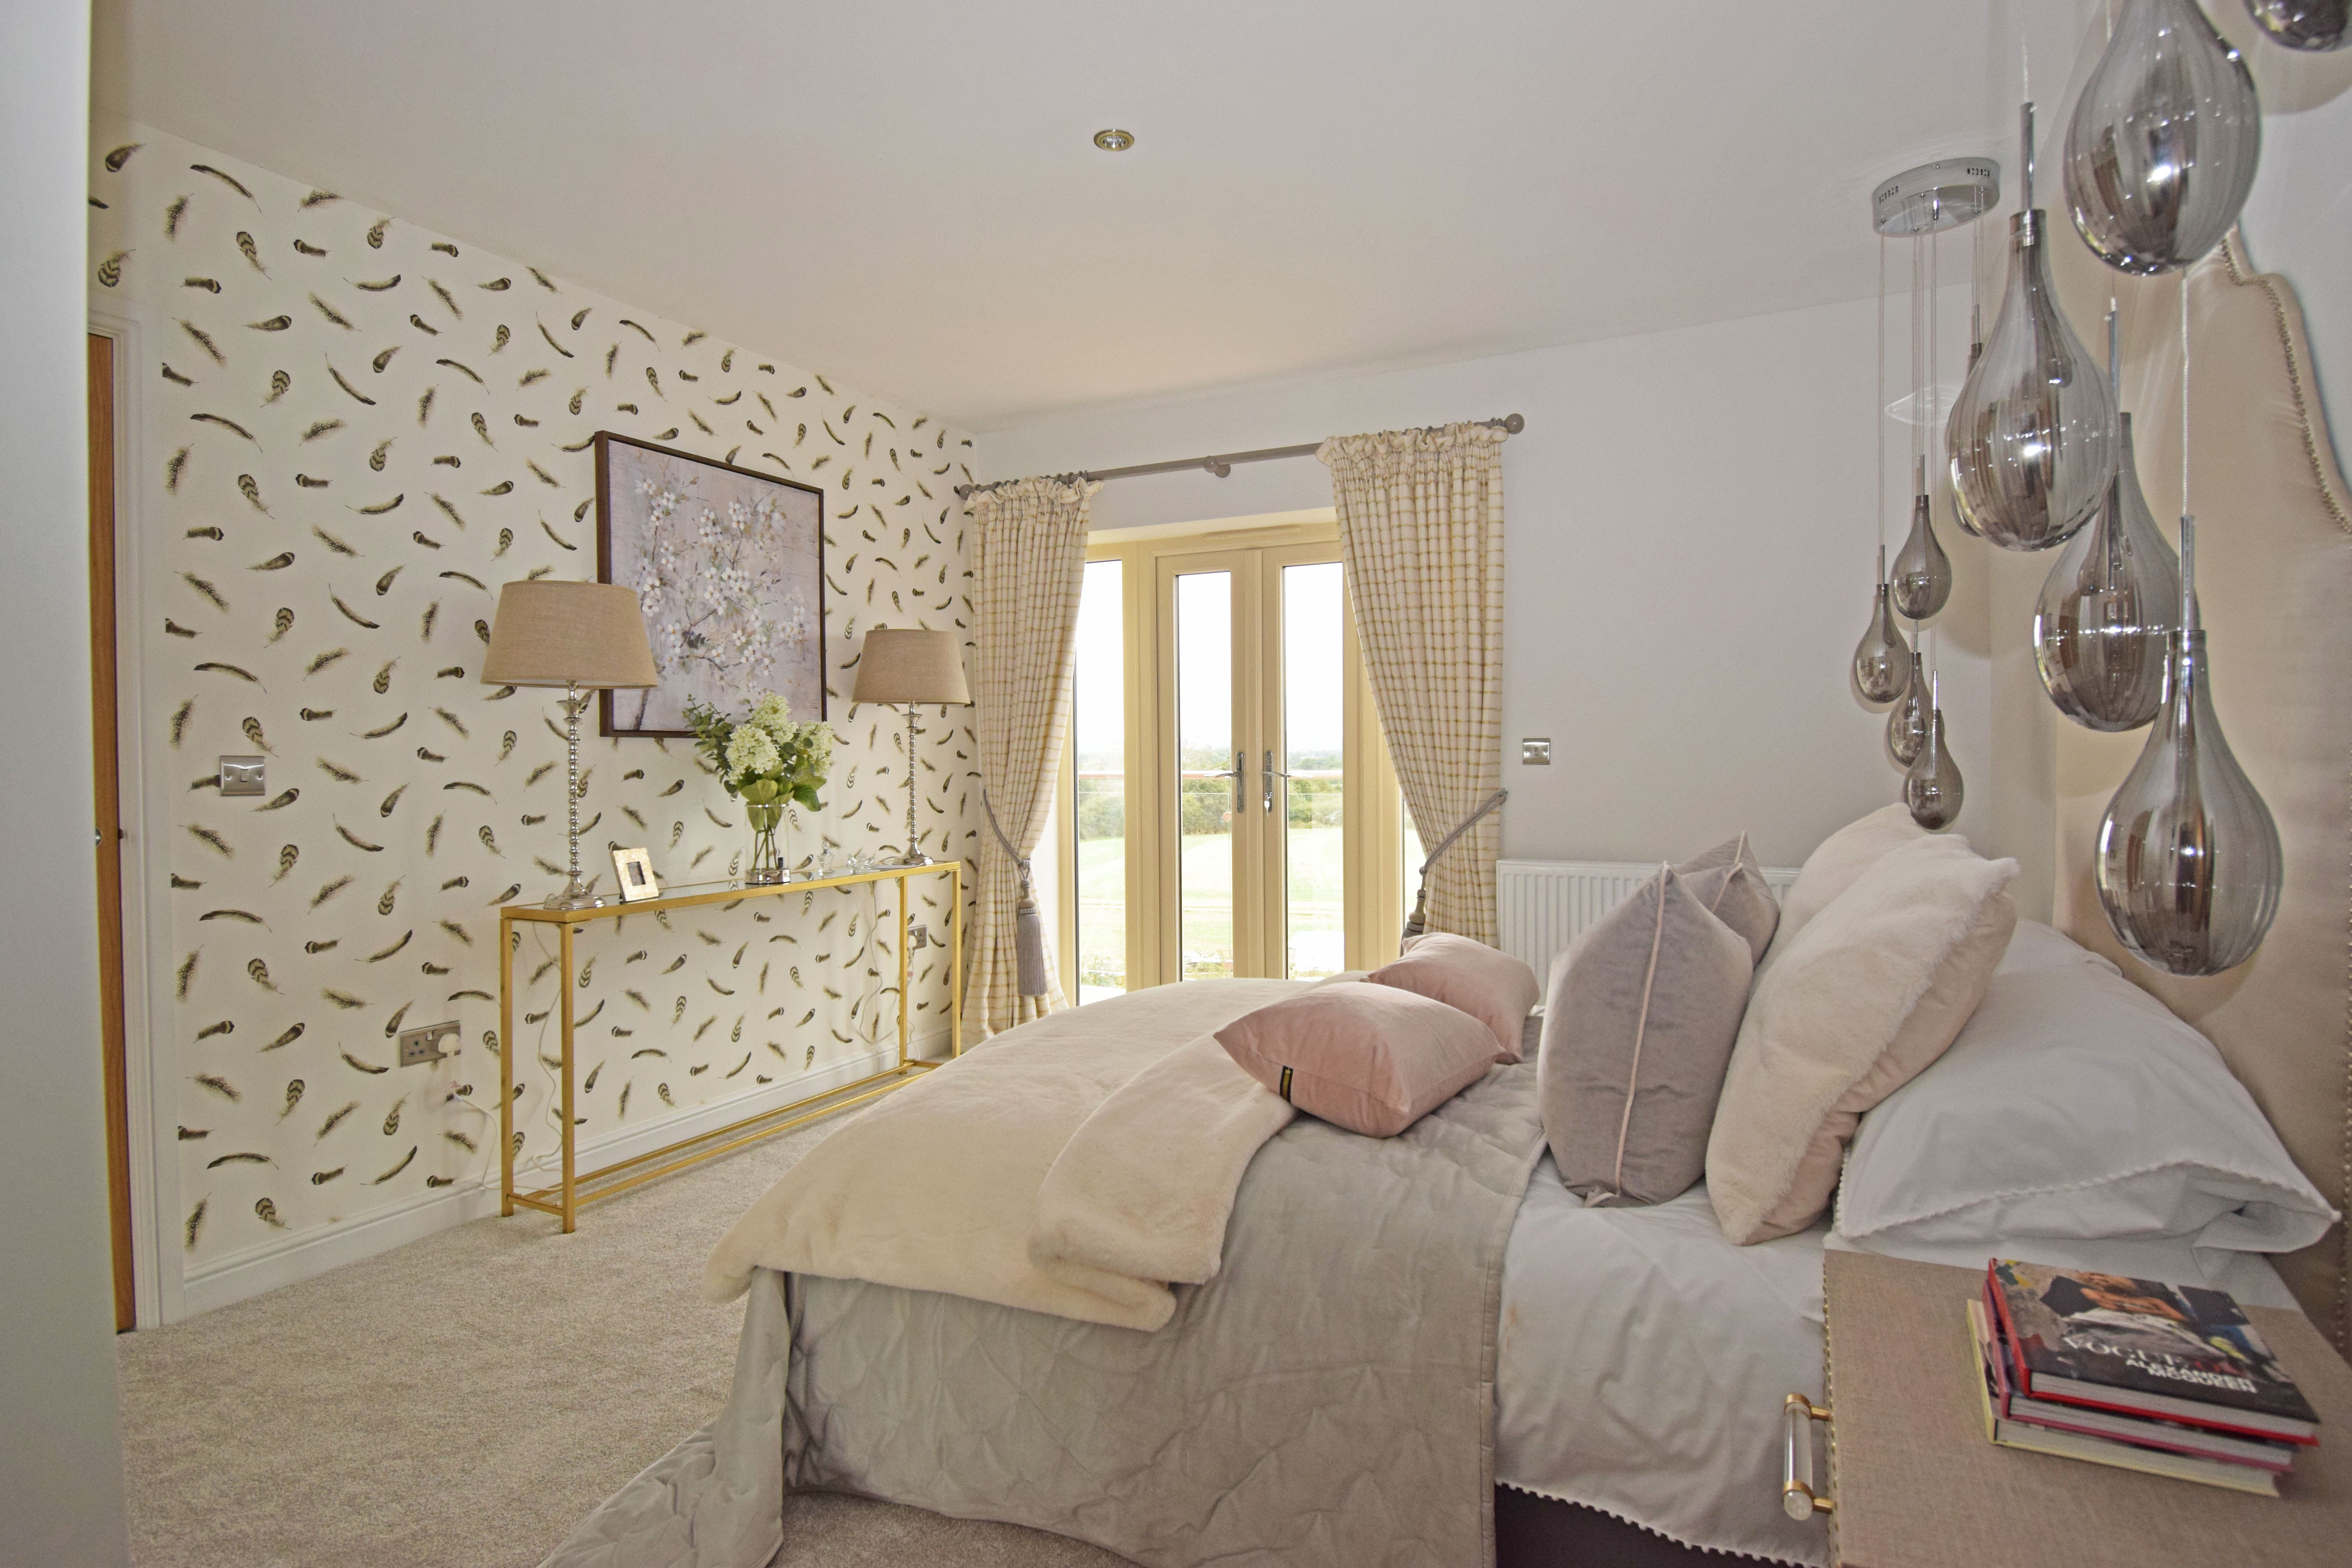 Plot 1 Peachley Court, bed 1b-min